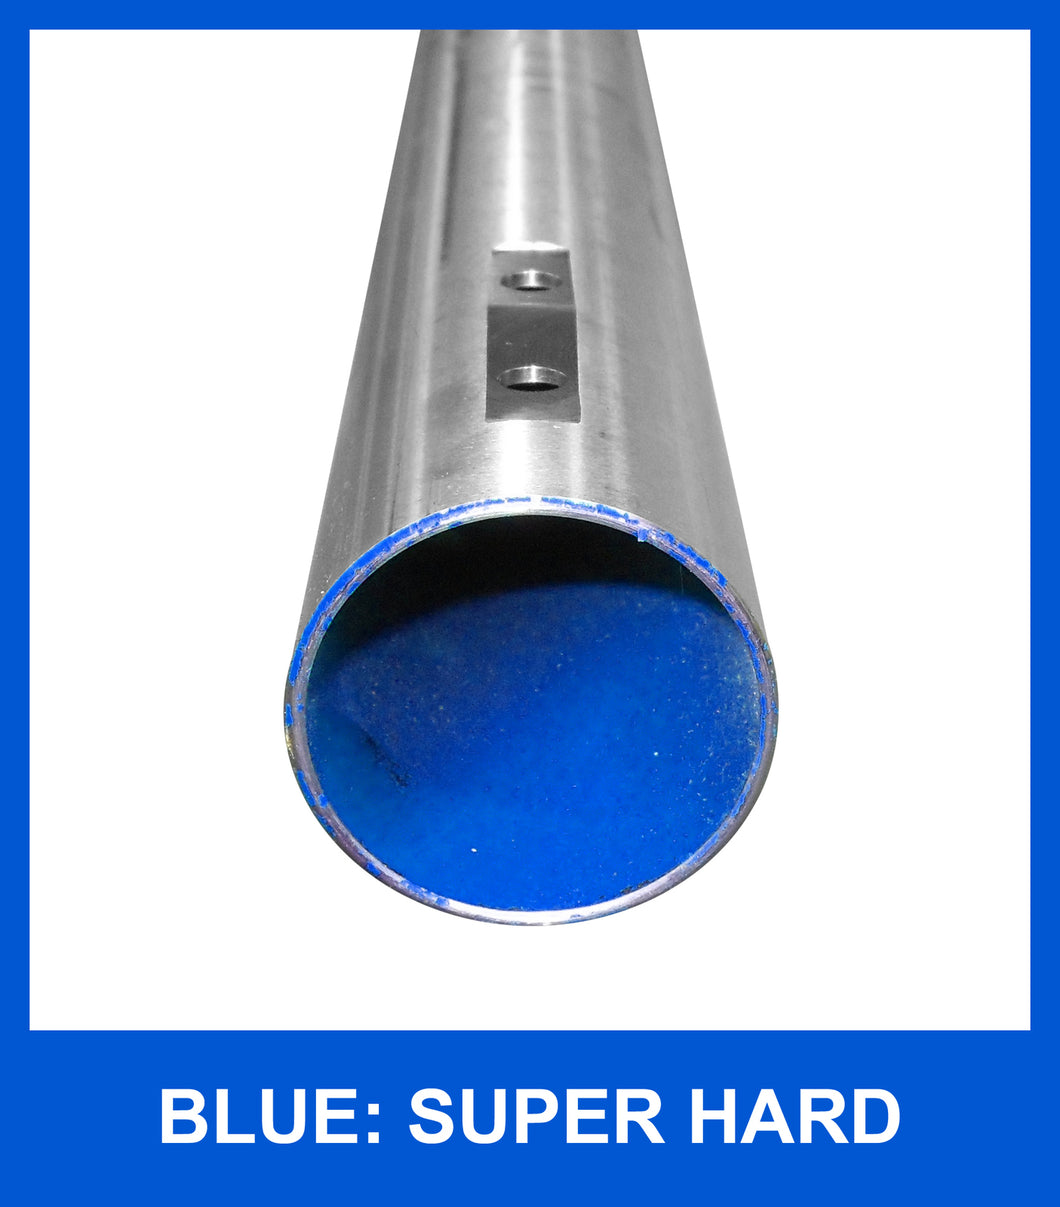 Axle 50mm x 1030mm SuperHard - BLUE